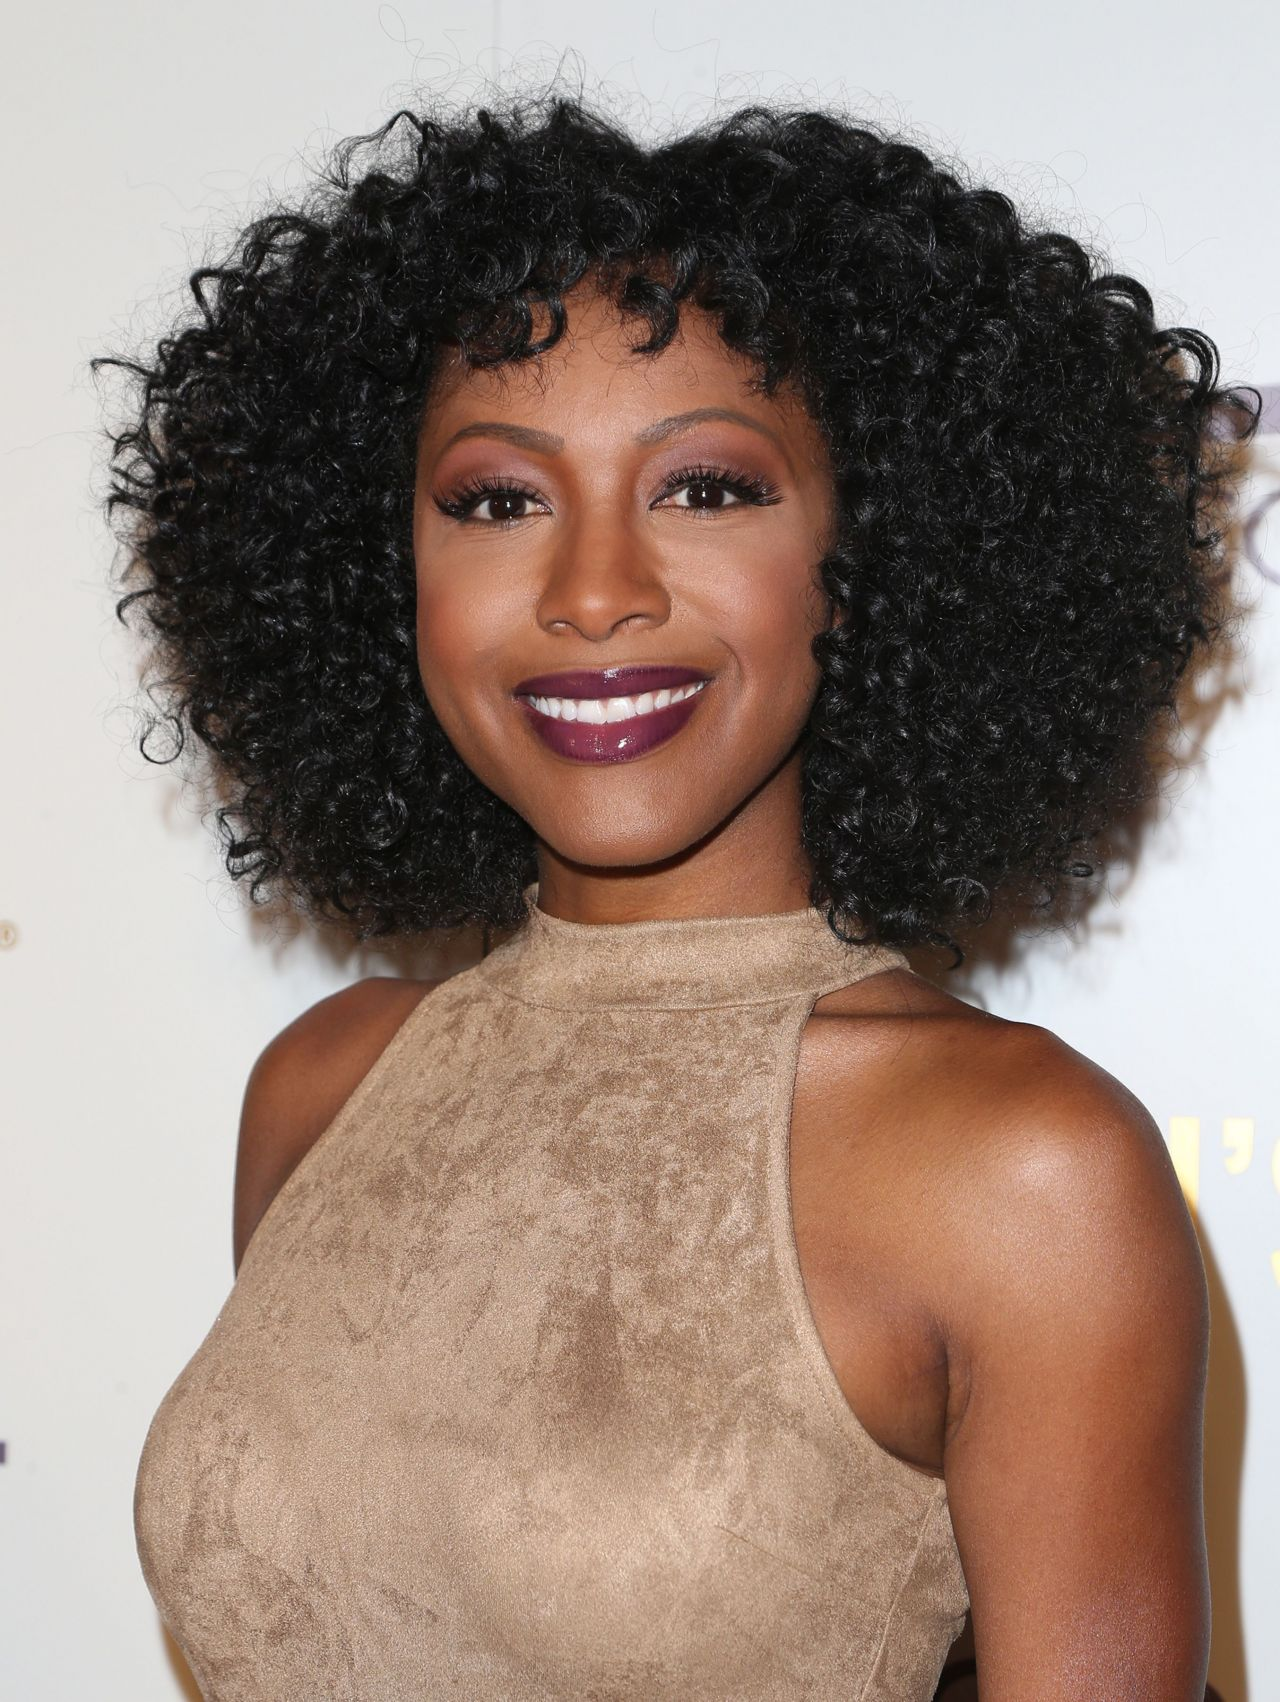 The 36-year old daughter of father (?) and mother(?), 158 cm tall Gabrielle Dennis in 2018 photo